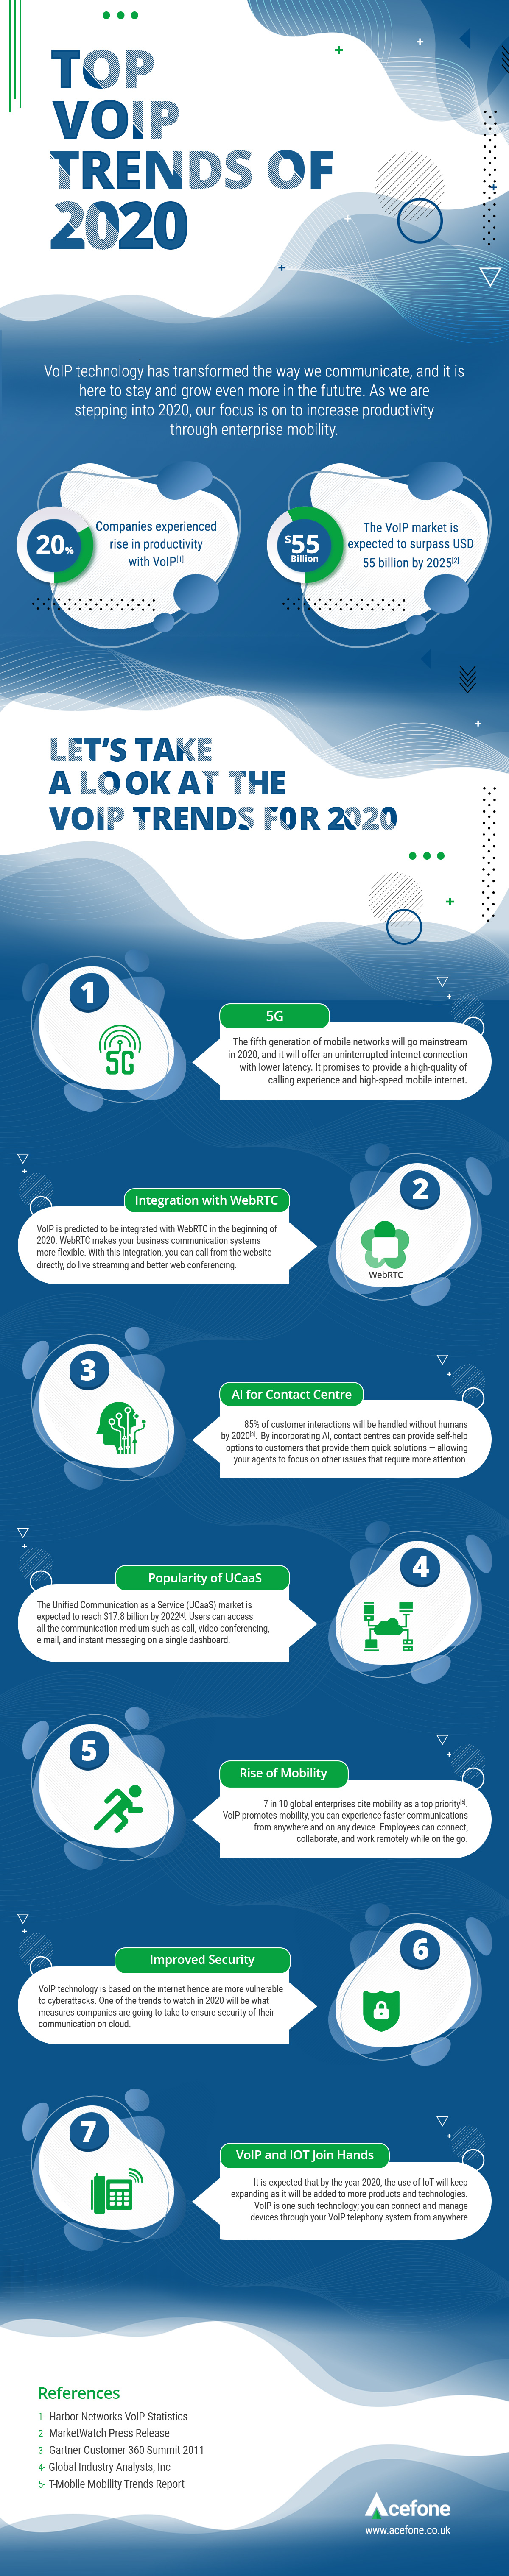 Here are top 7 VoIP trends to watch in 2020.